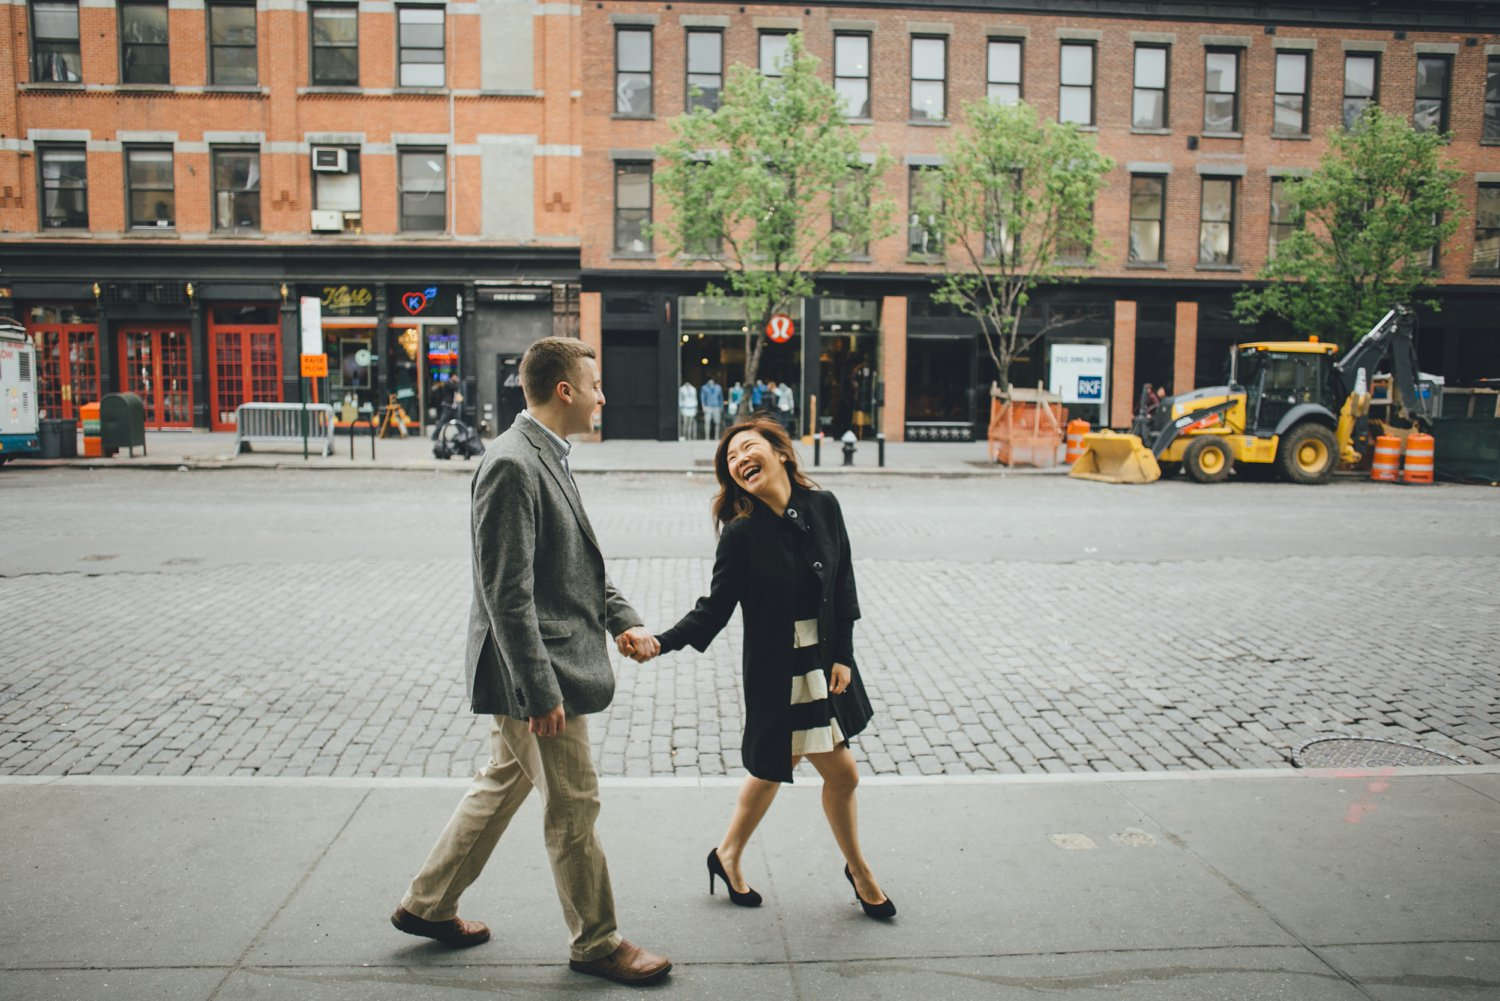 27NYC-NJ-ENGAGEMENT-PHOTOGRAPHY-BY-INTOTHESTORY-MOO-JAE.JPG